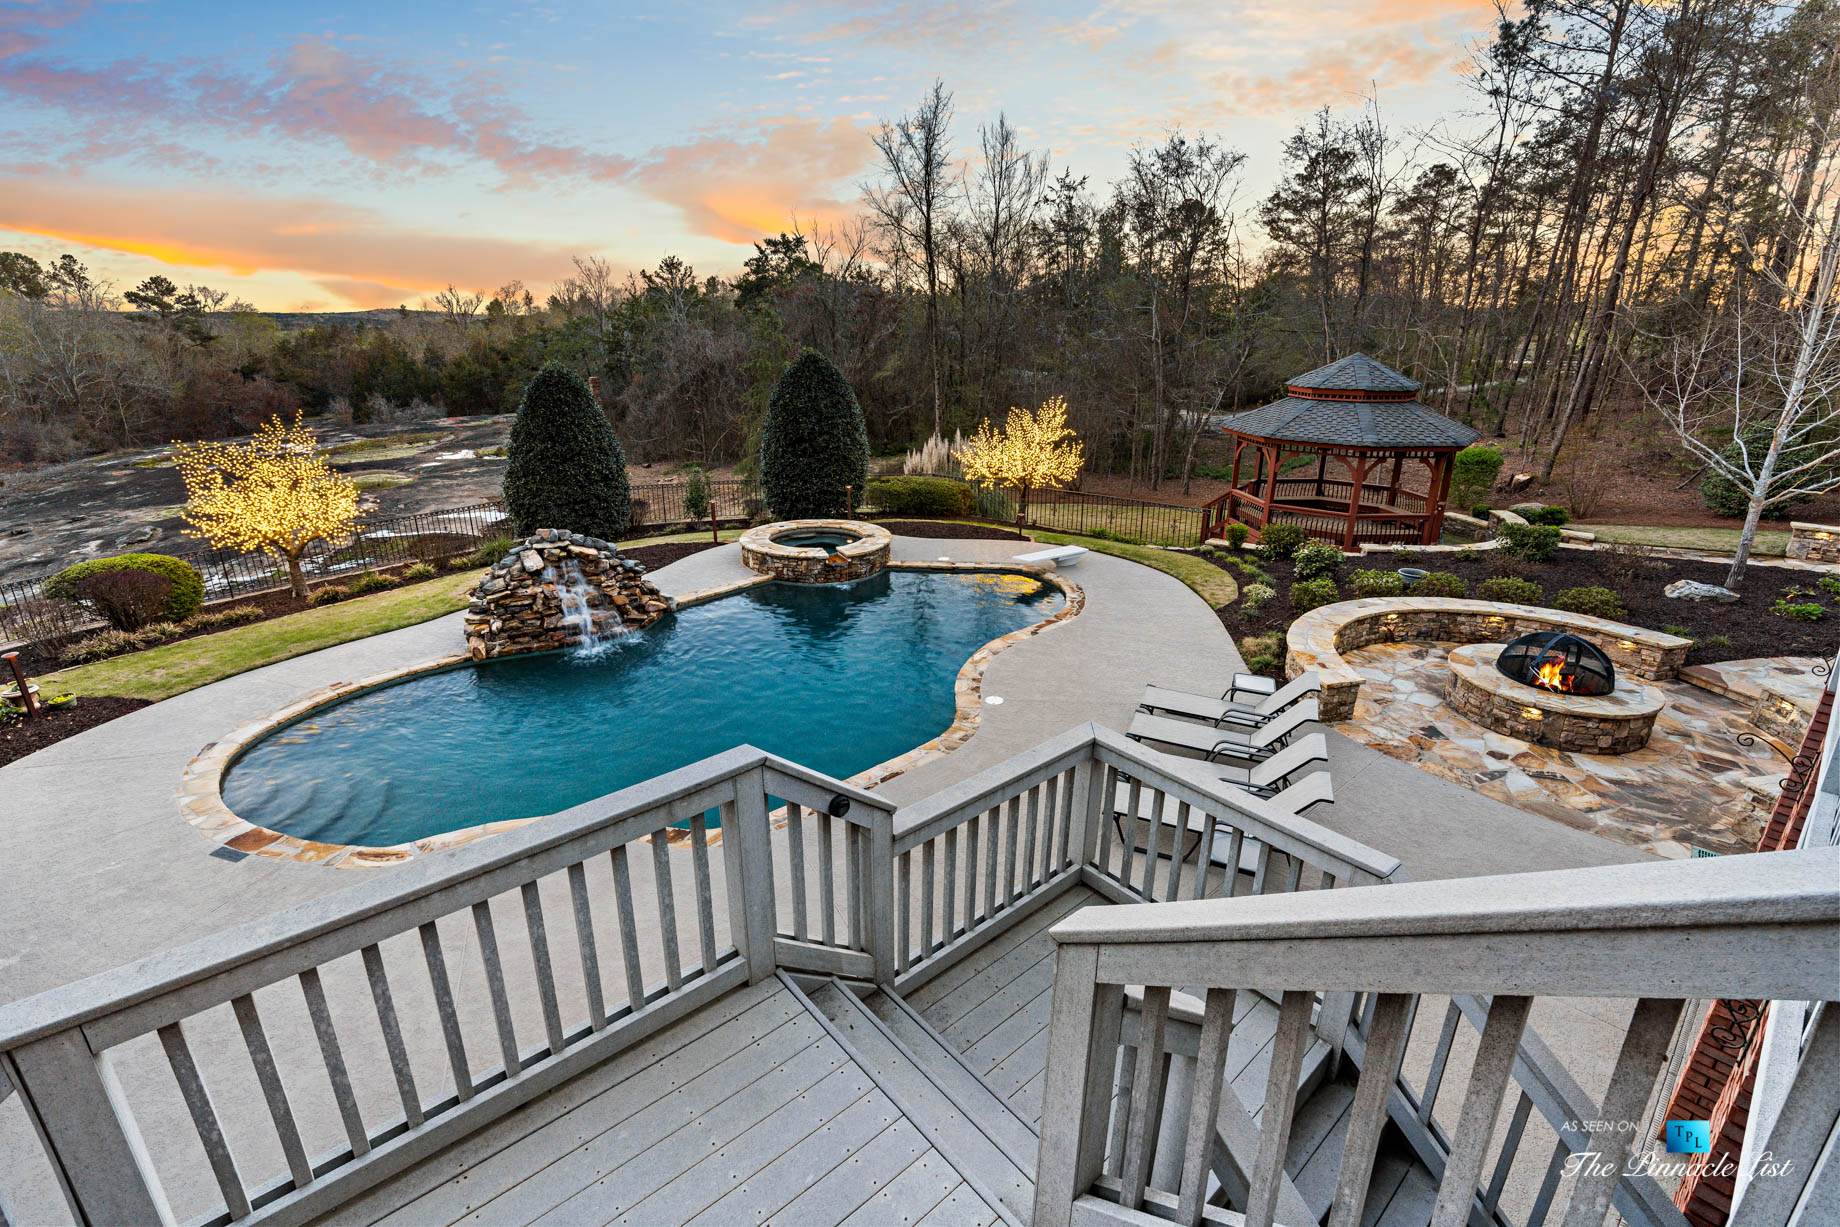 2219 Costley Mill Rd NE, Conyers, GA, USA - Rear Upper Deck Overlooking Pool - Luxury Real Estate - Equestrian Country Home